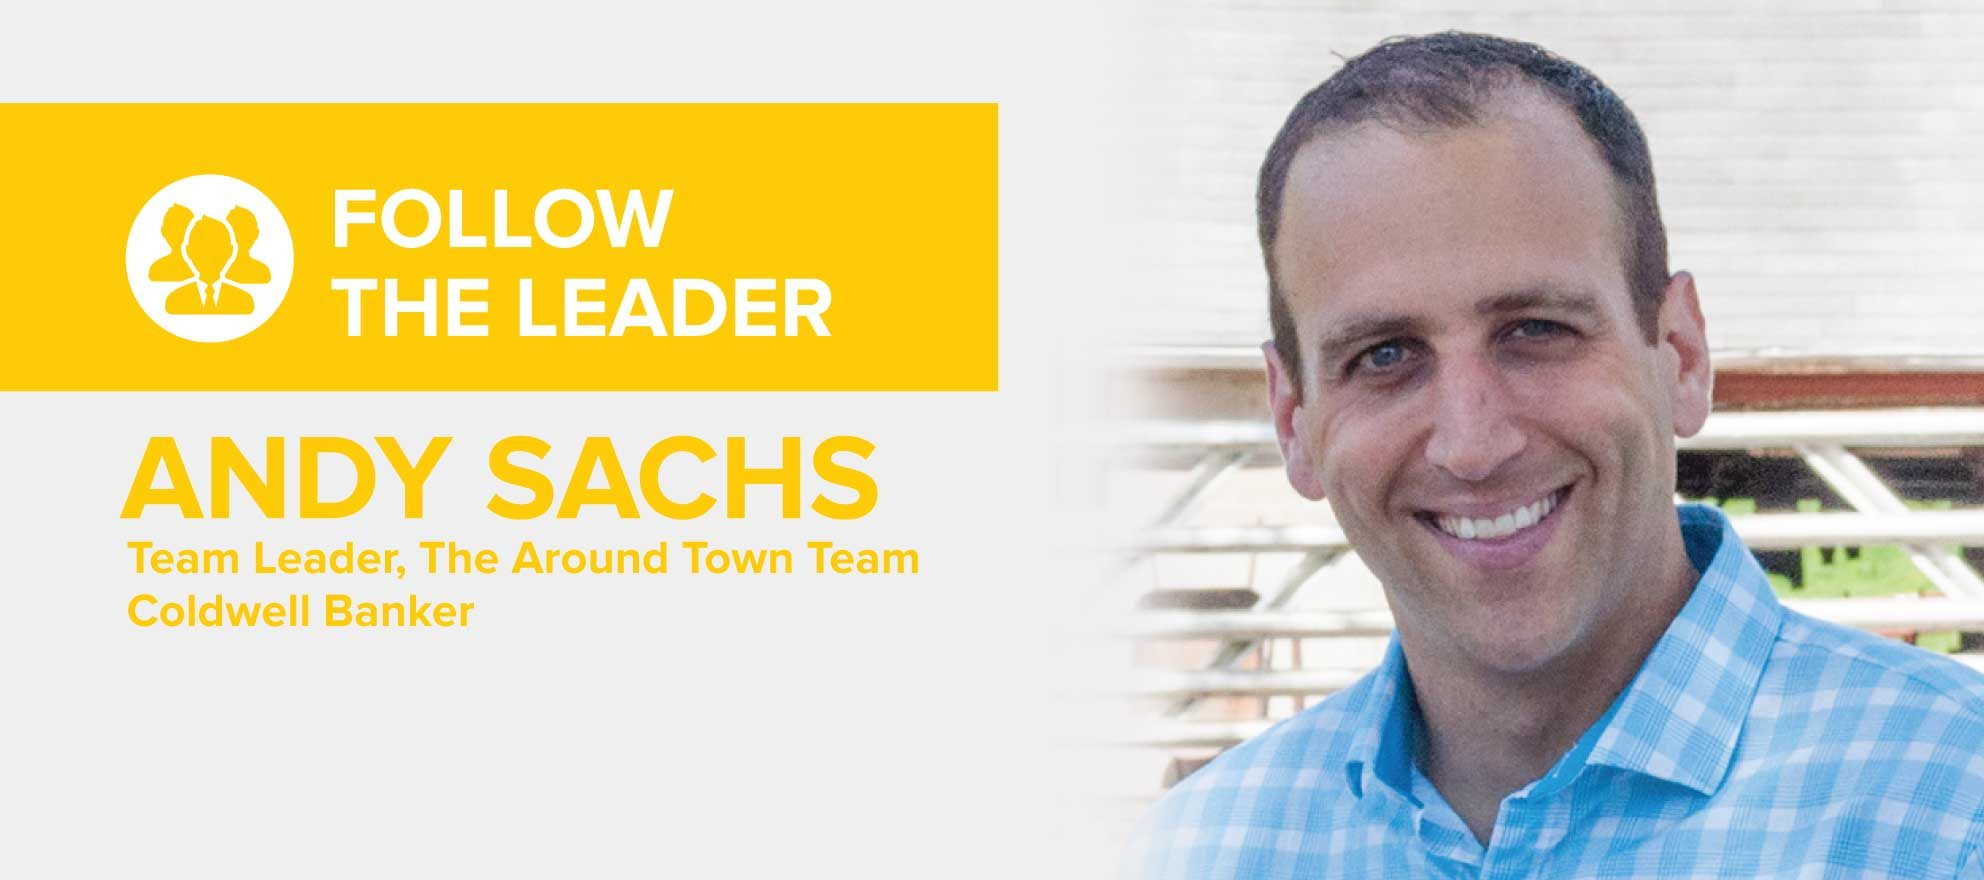 Andy Sachs: 'My passion in real estate is to be different and innovate'